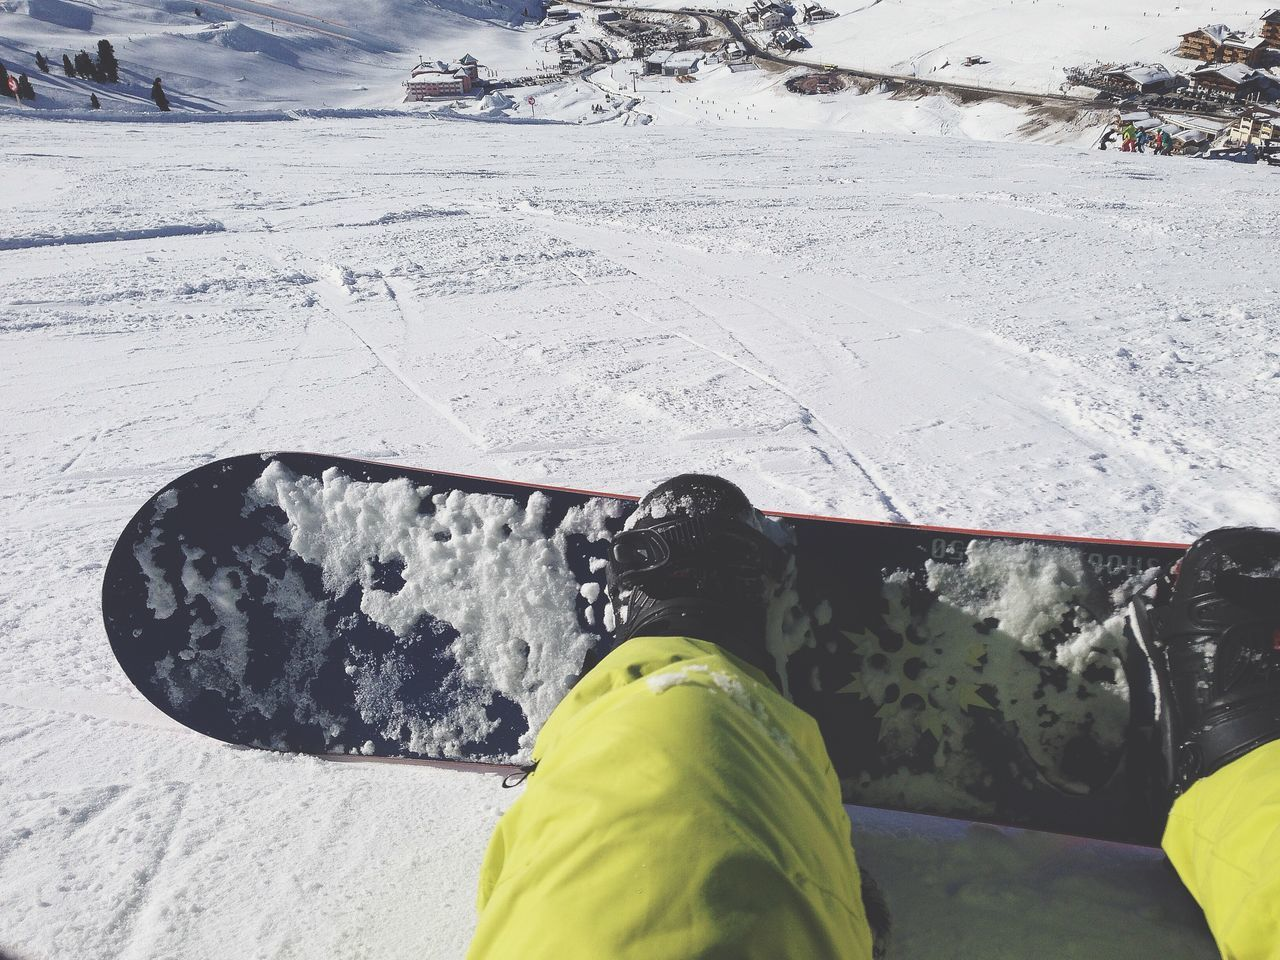 Close-up of snowboarder sitting on snow covered landscape